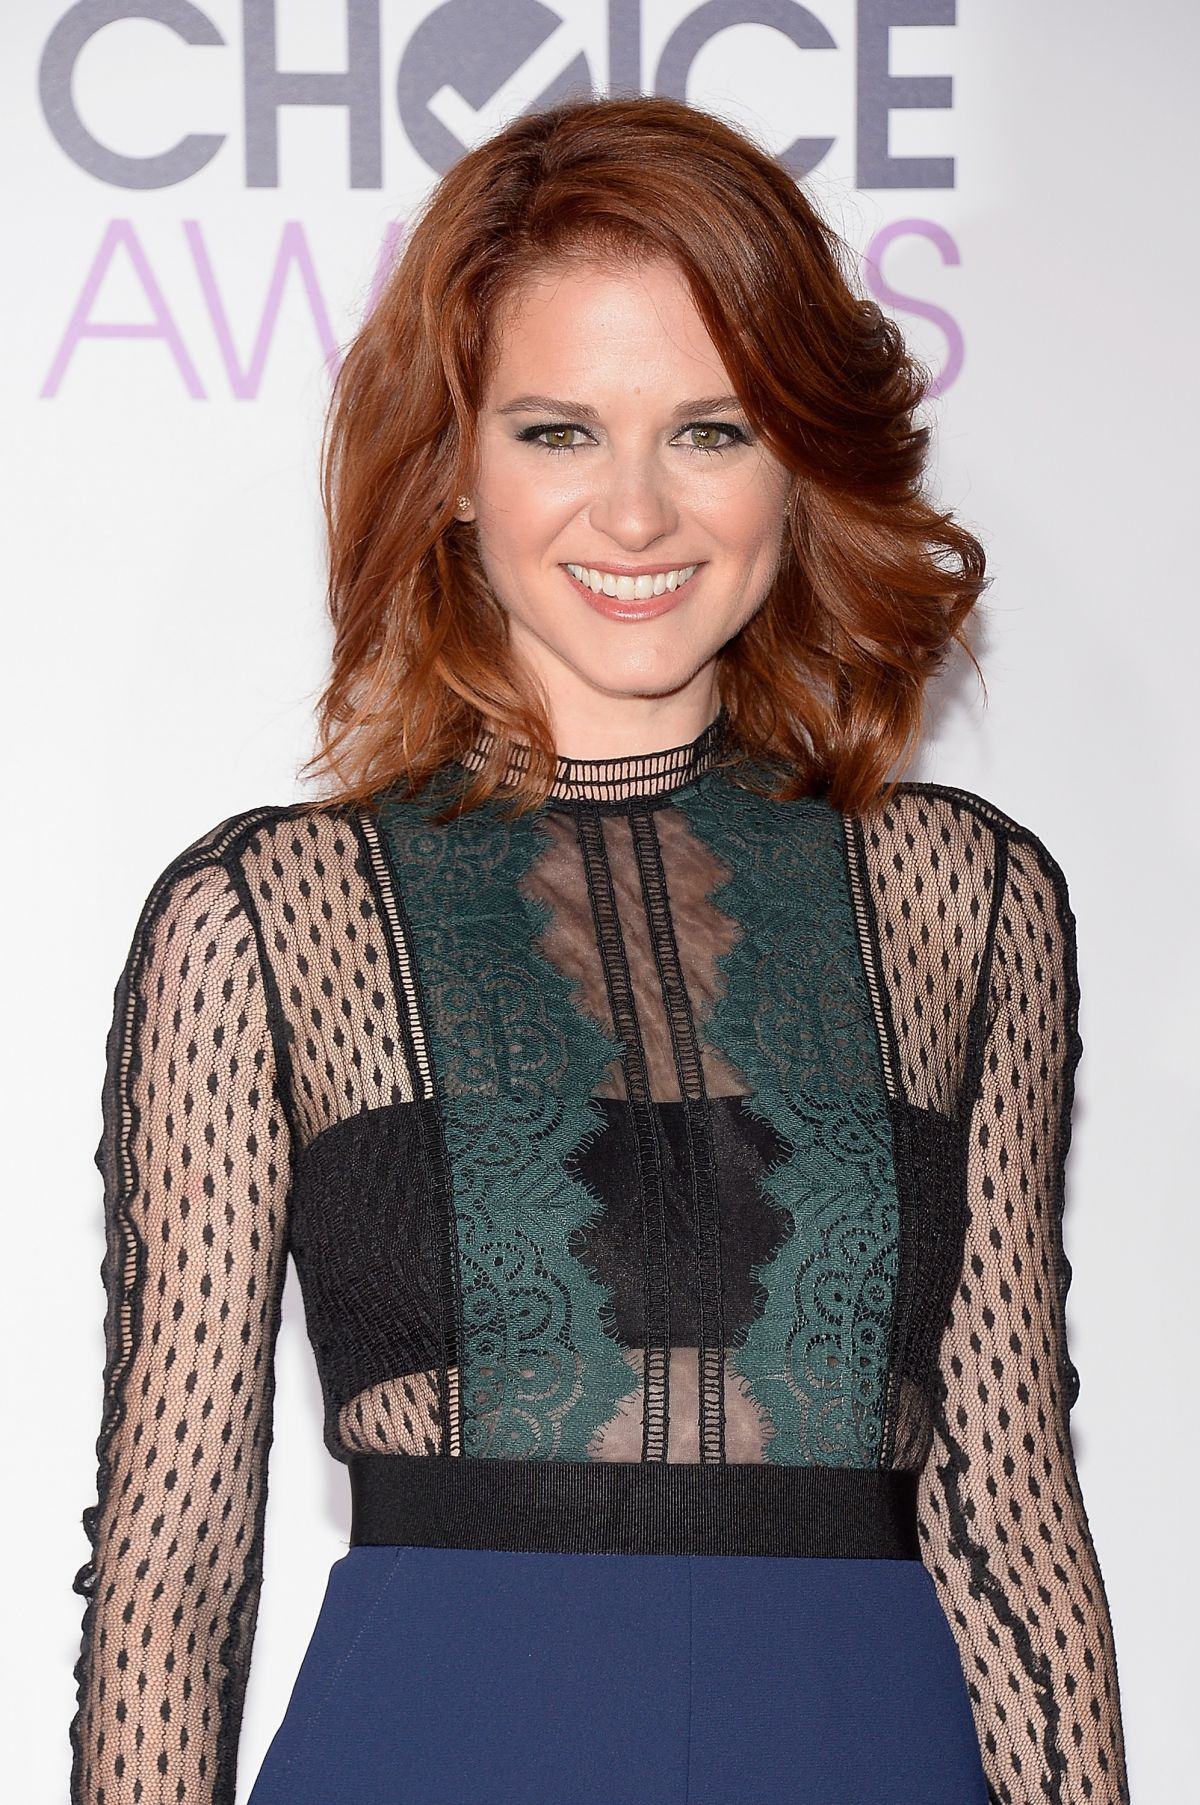 SARAH DREW at 2016 People's Choice Awards in Los Angeles 01/06/2016